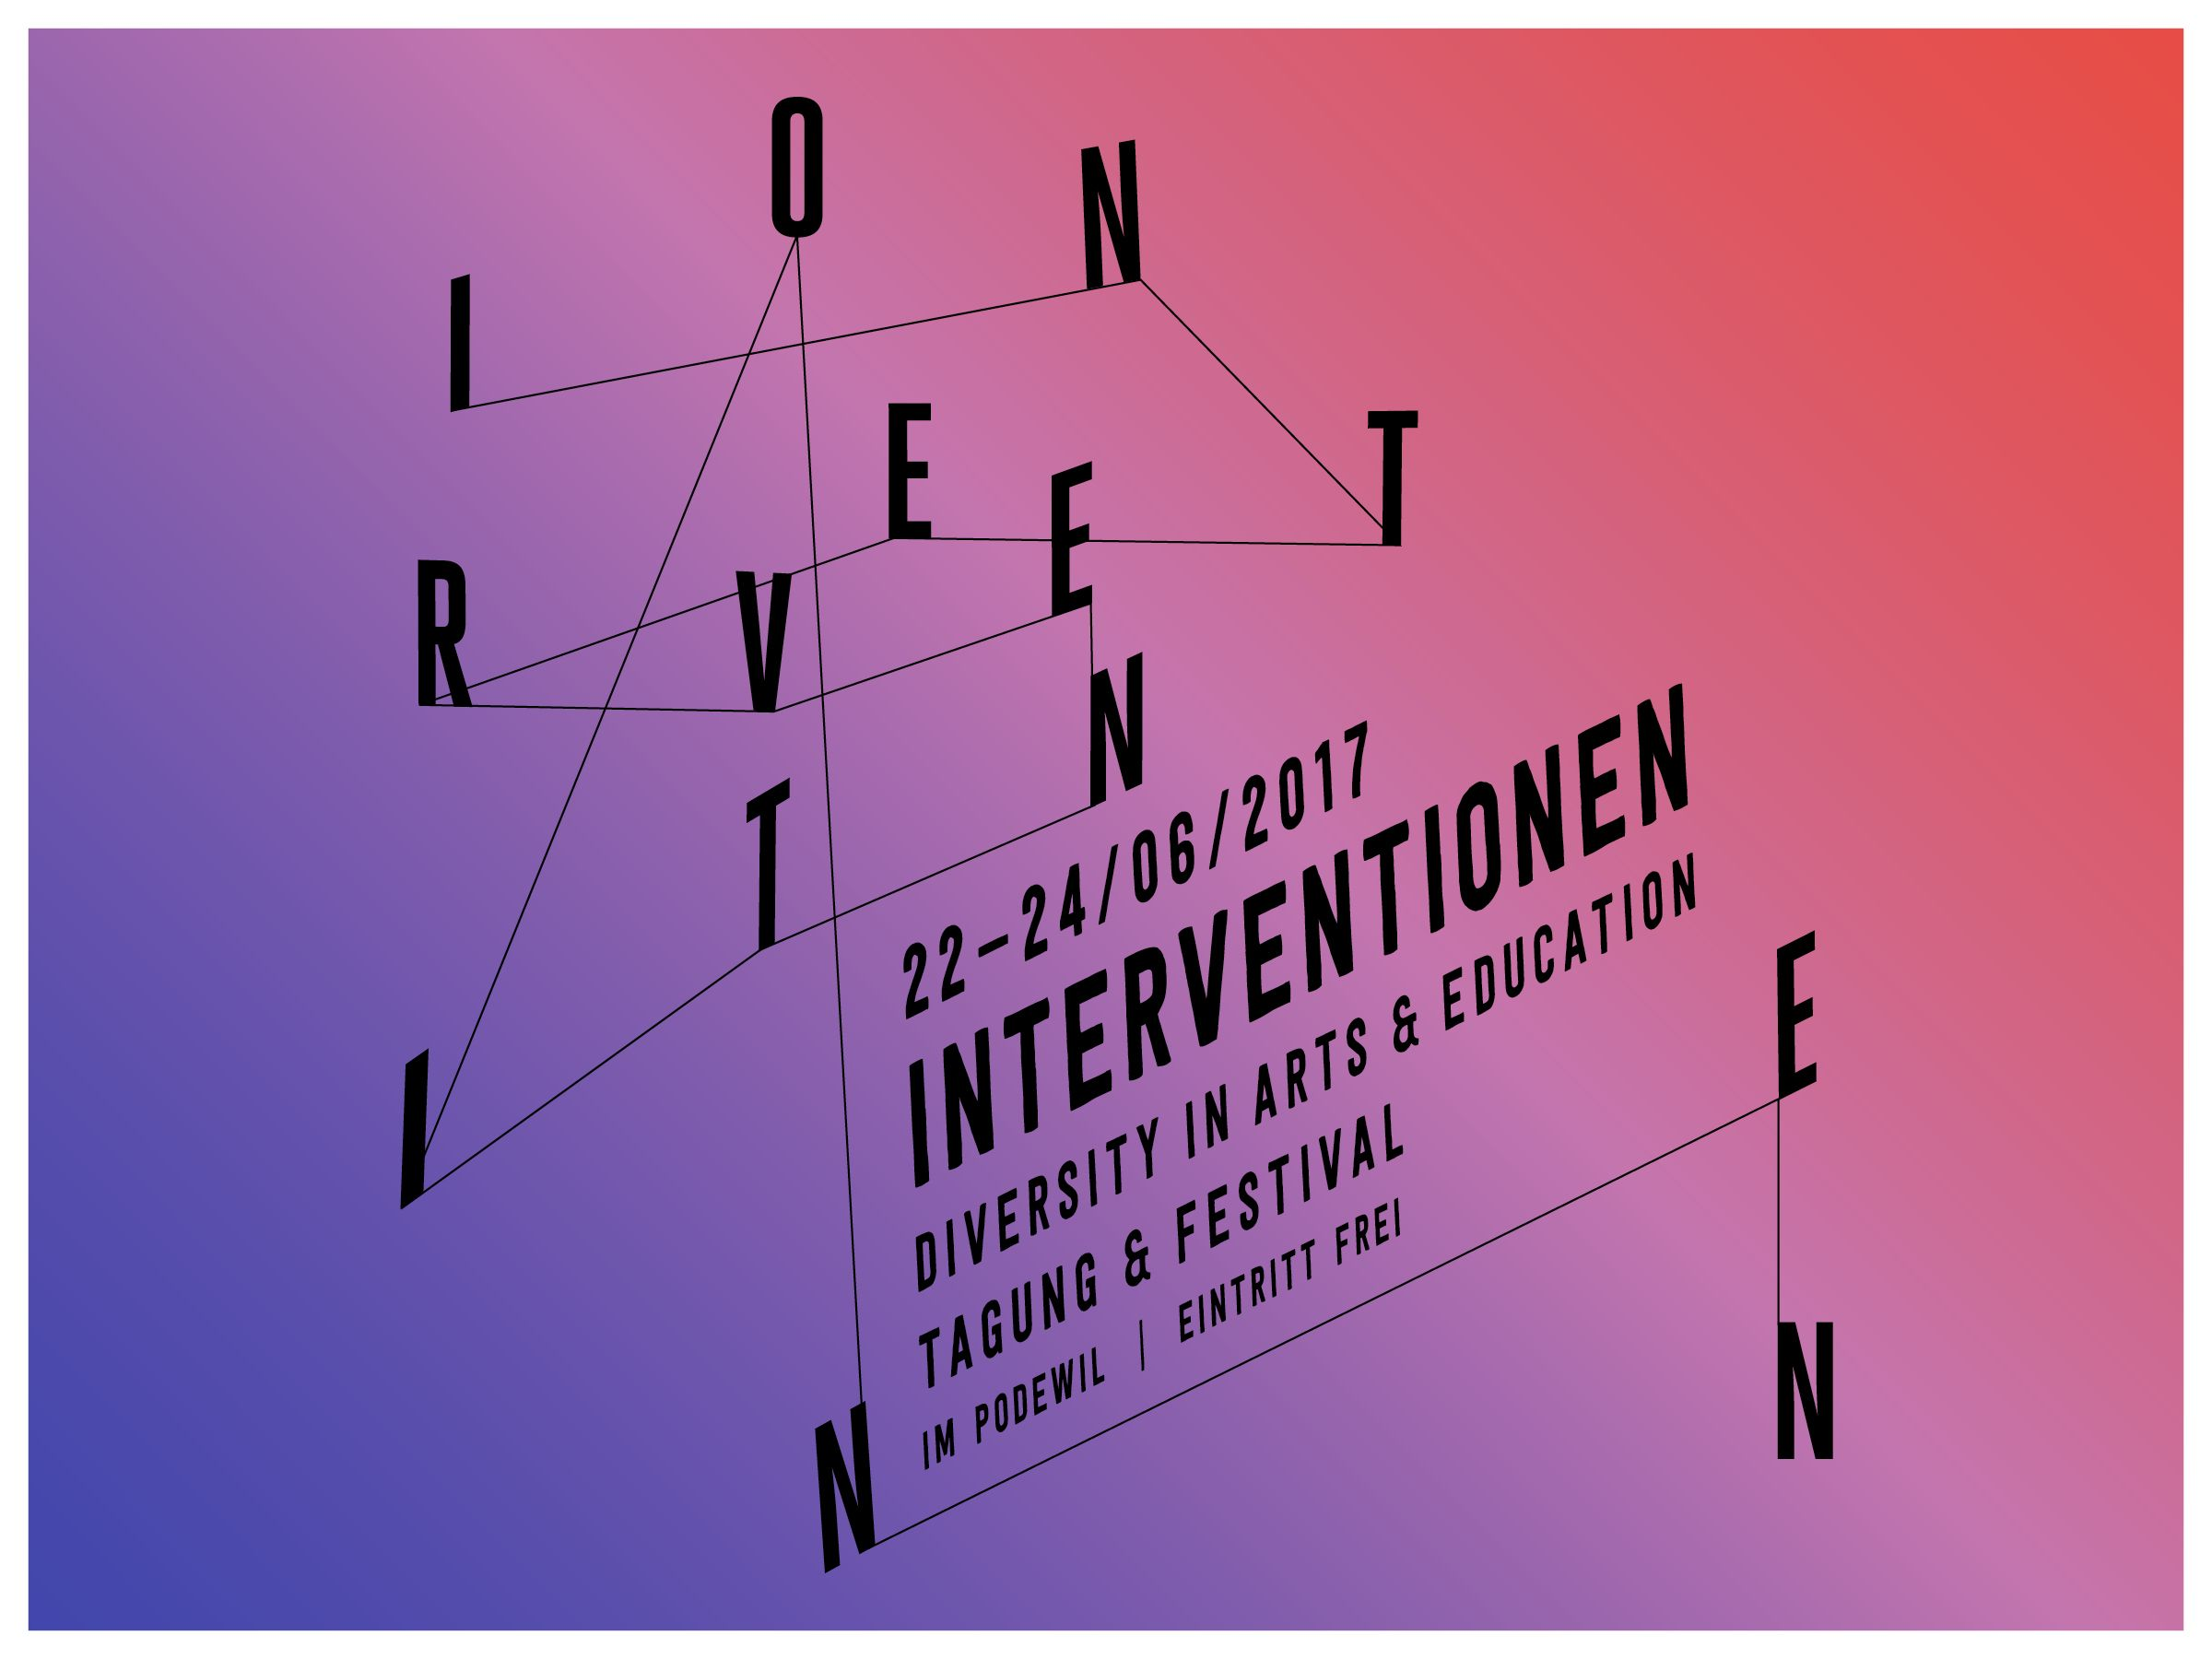 EINLADUNG INTERVENTIONEN 2017 – DIVERSITY IN ARTS & EDUCATION (22.-24. Juni 2017)